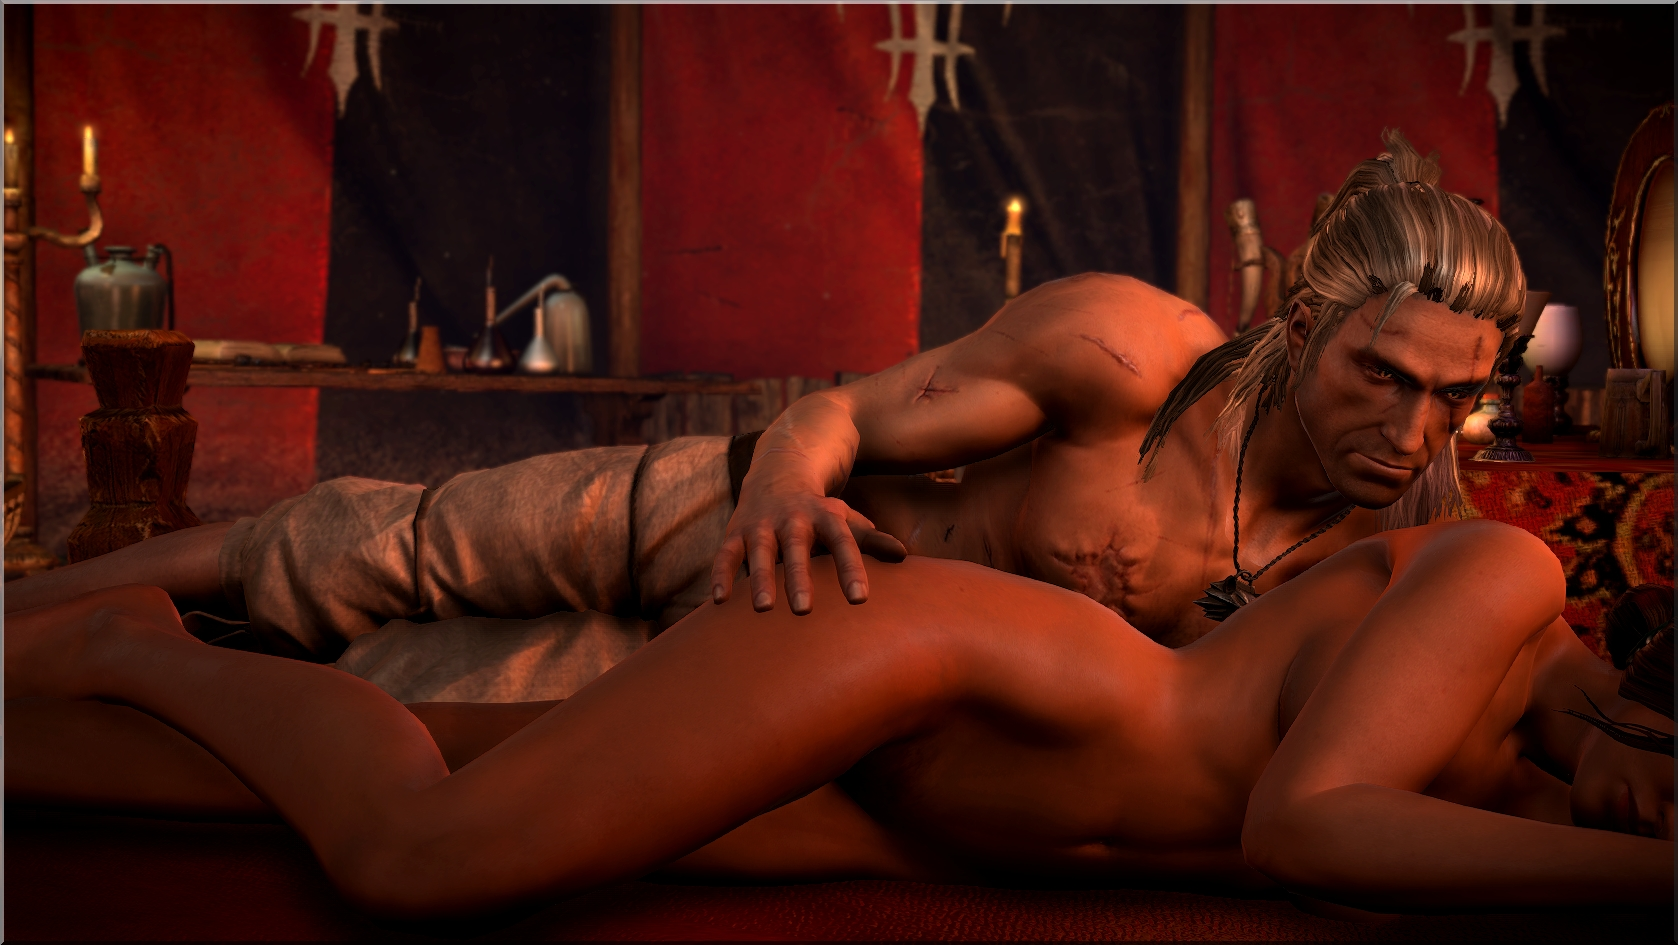 Rogue assassin nude scene naked image